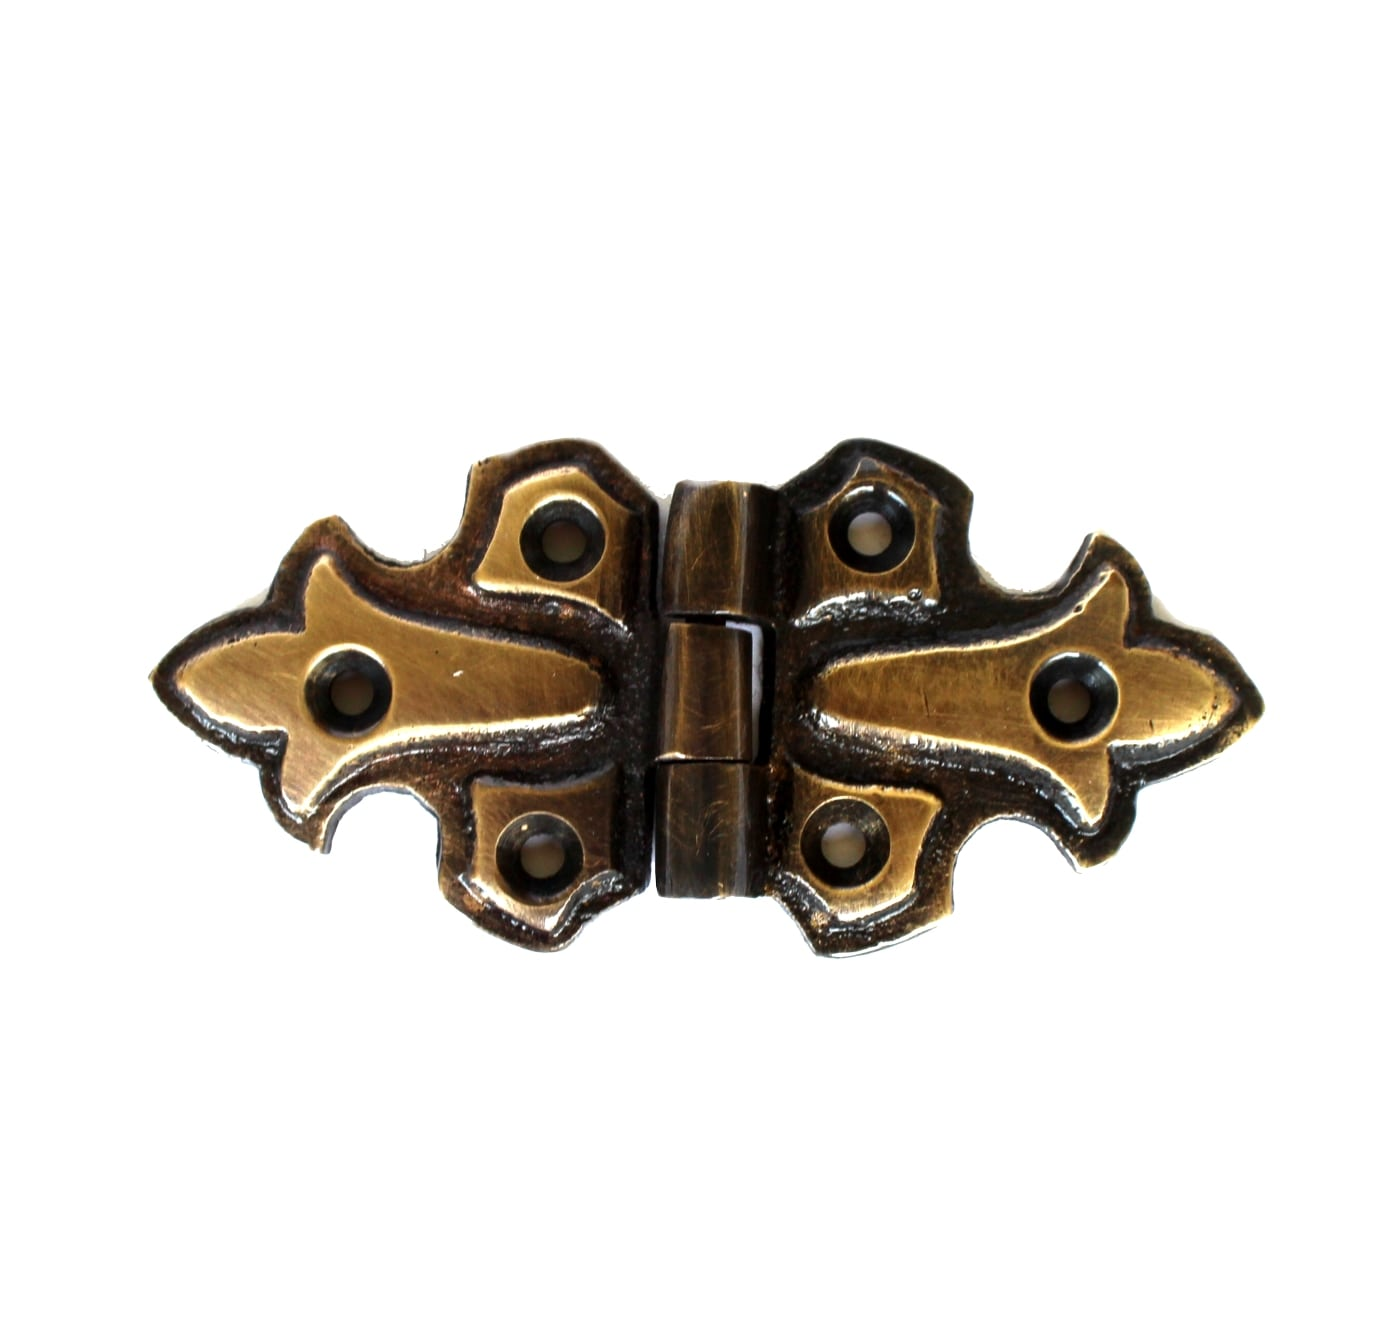 Fleur De Lis Surface Cabinet Hardware Hinge Aged Bronze Finish Over Solid  Brass